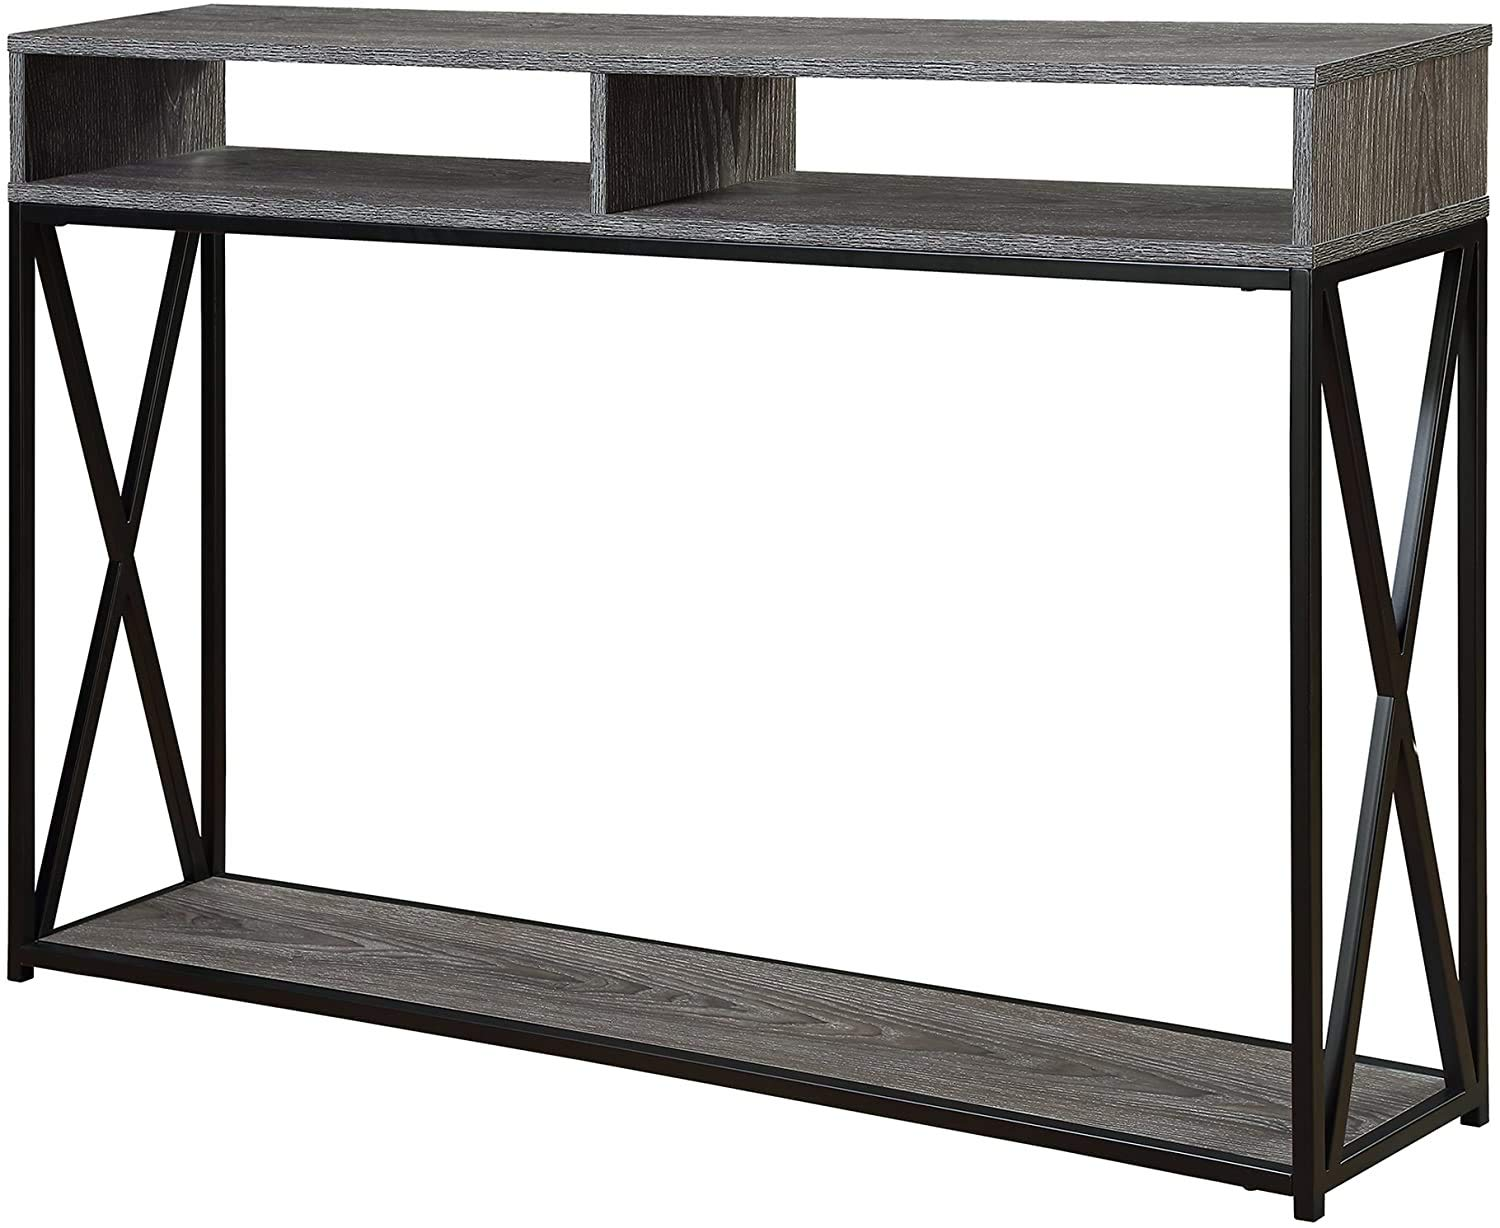 Convenience Concepts Tucson Deluxe 2 Tier Console Table, Weathered Gray / Black